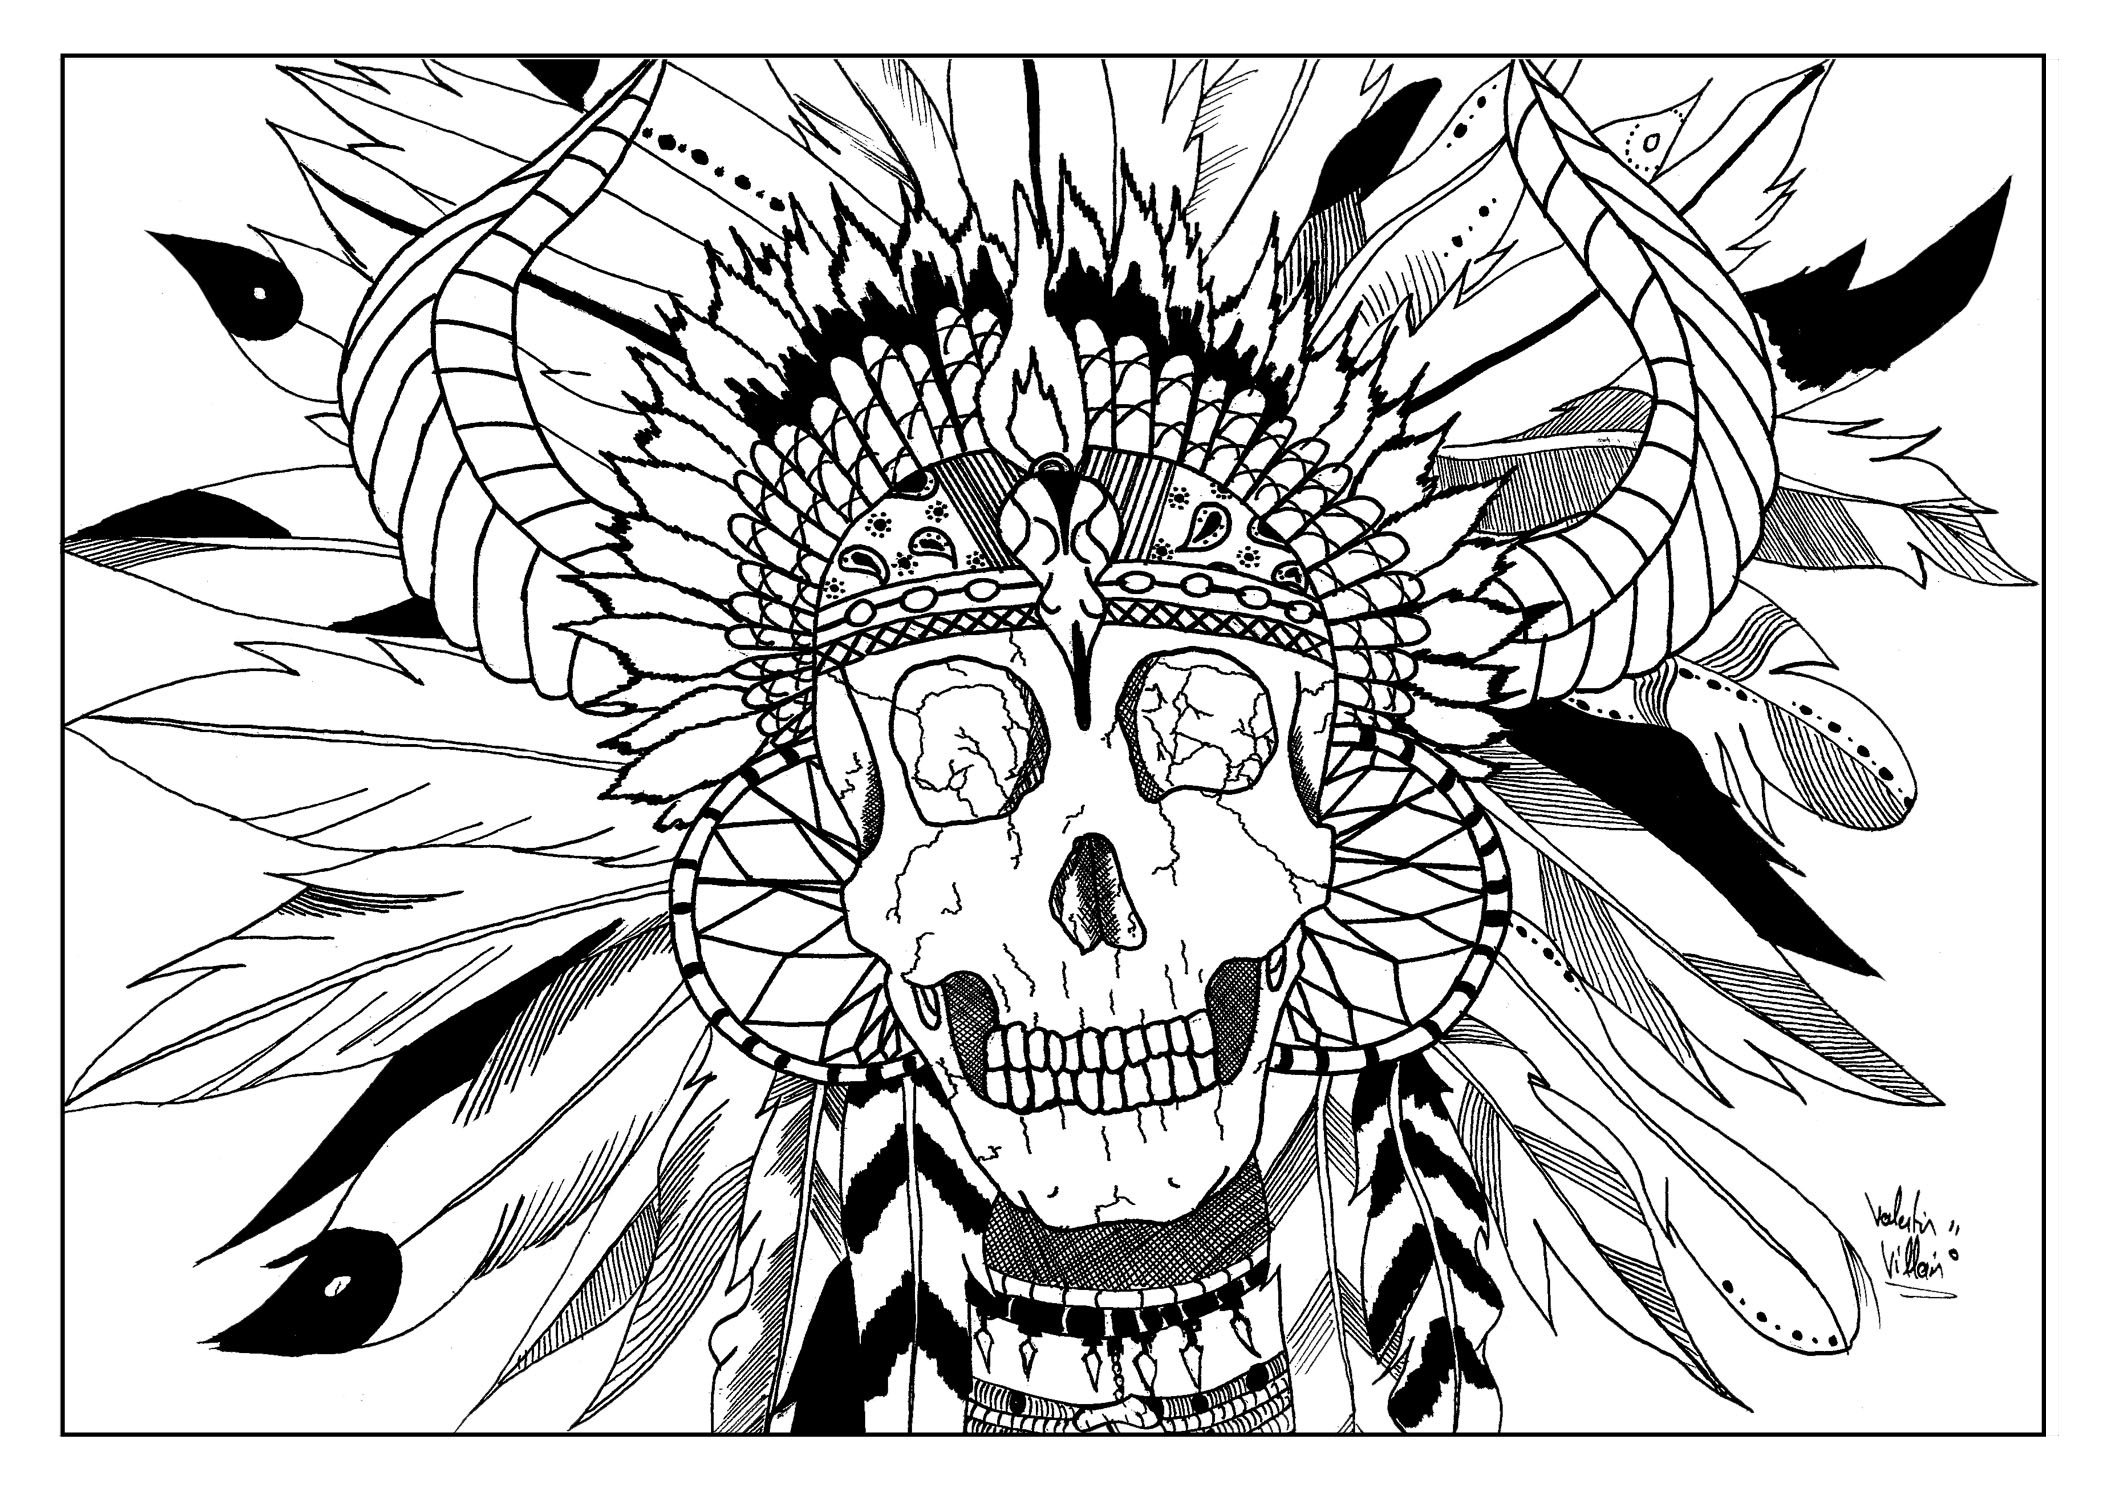 native american coloring pages for adults Skull indian   Native American Adult Coloring Pages native american coloring pages for adults